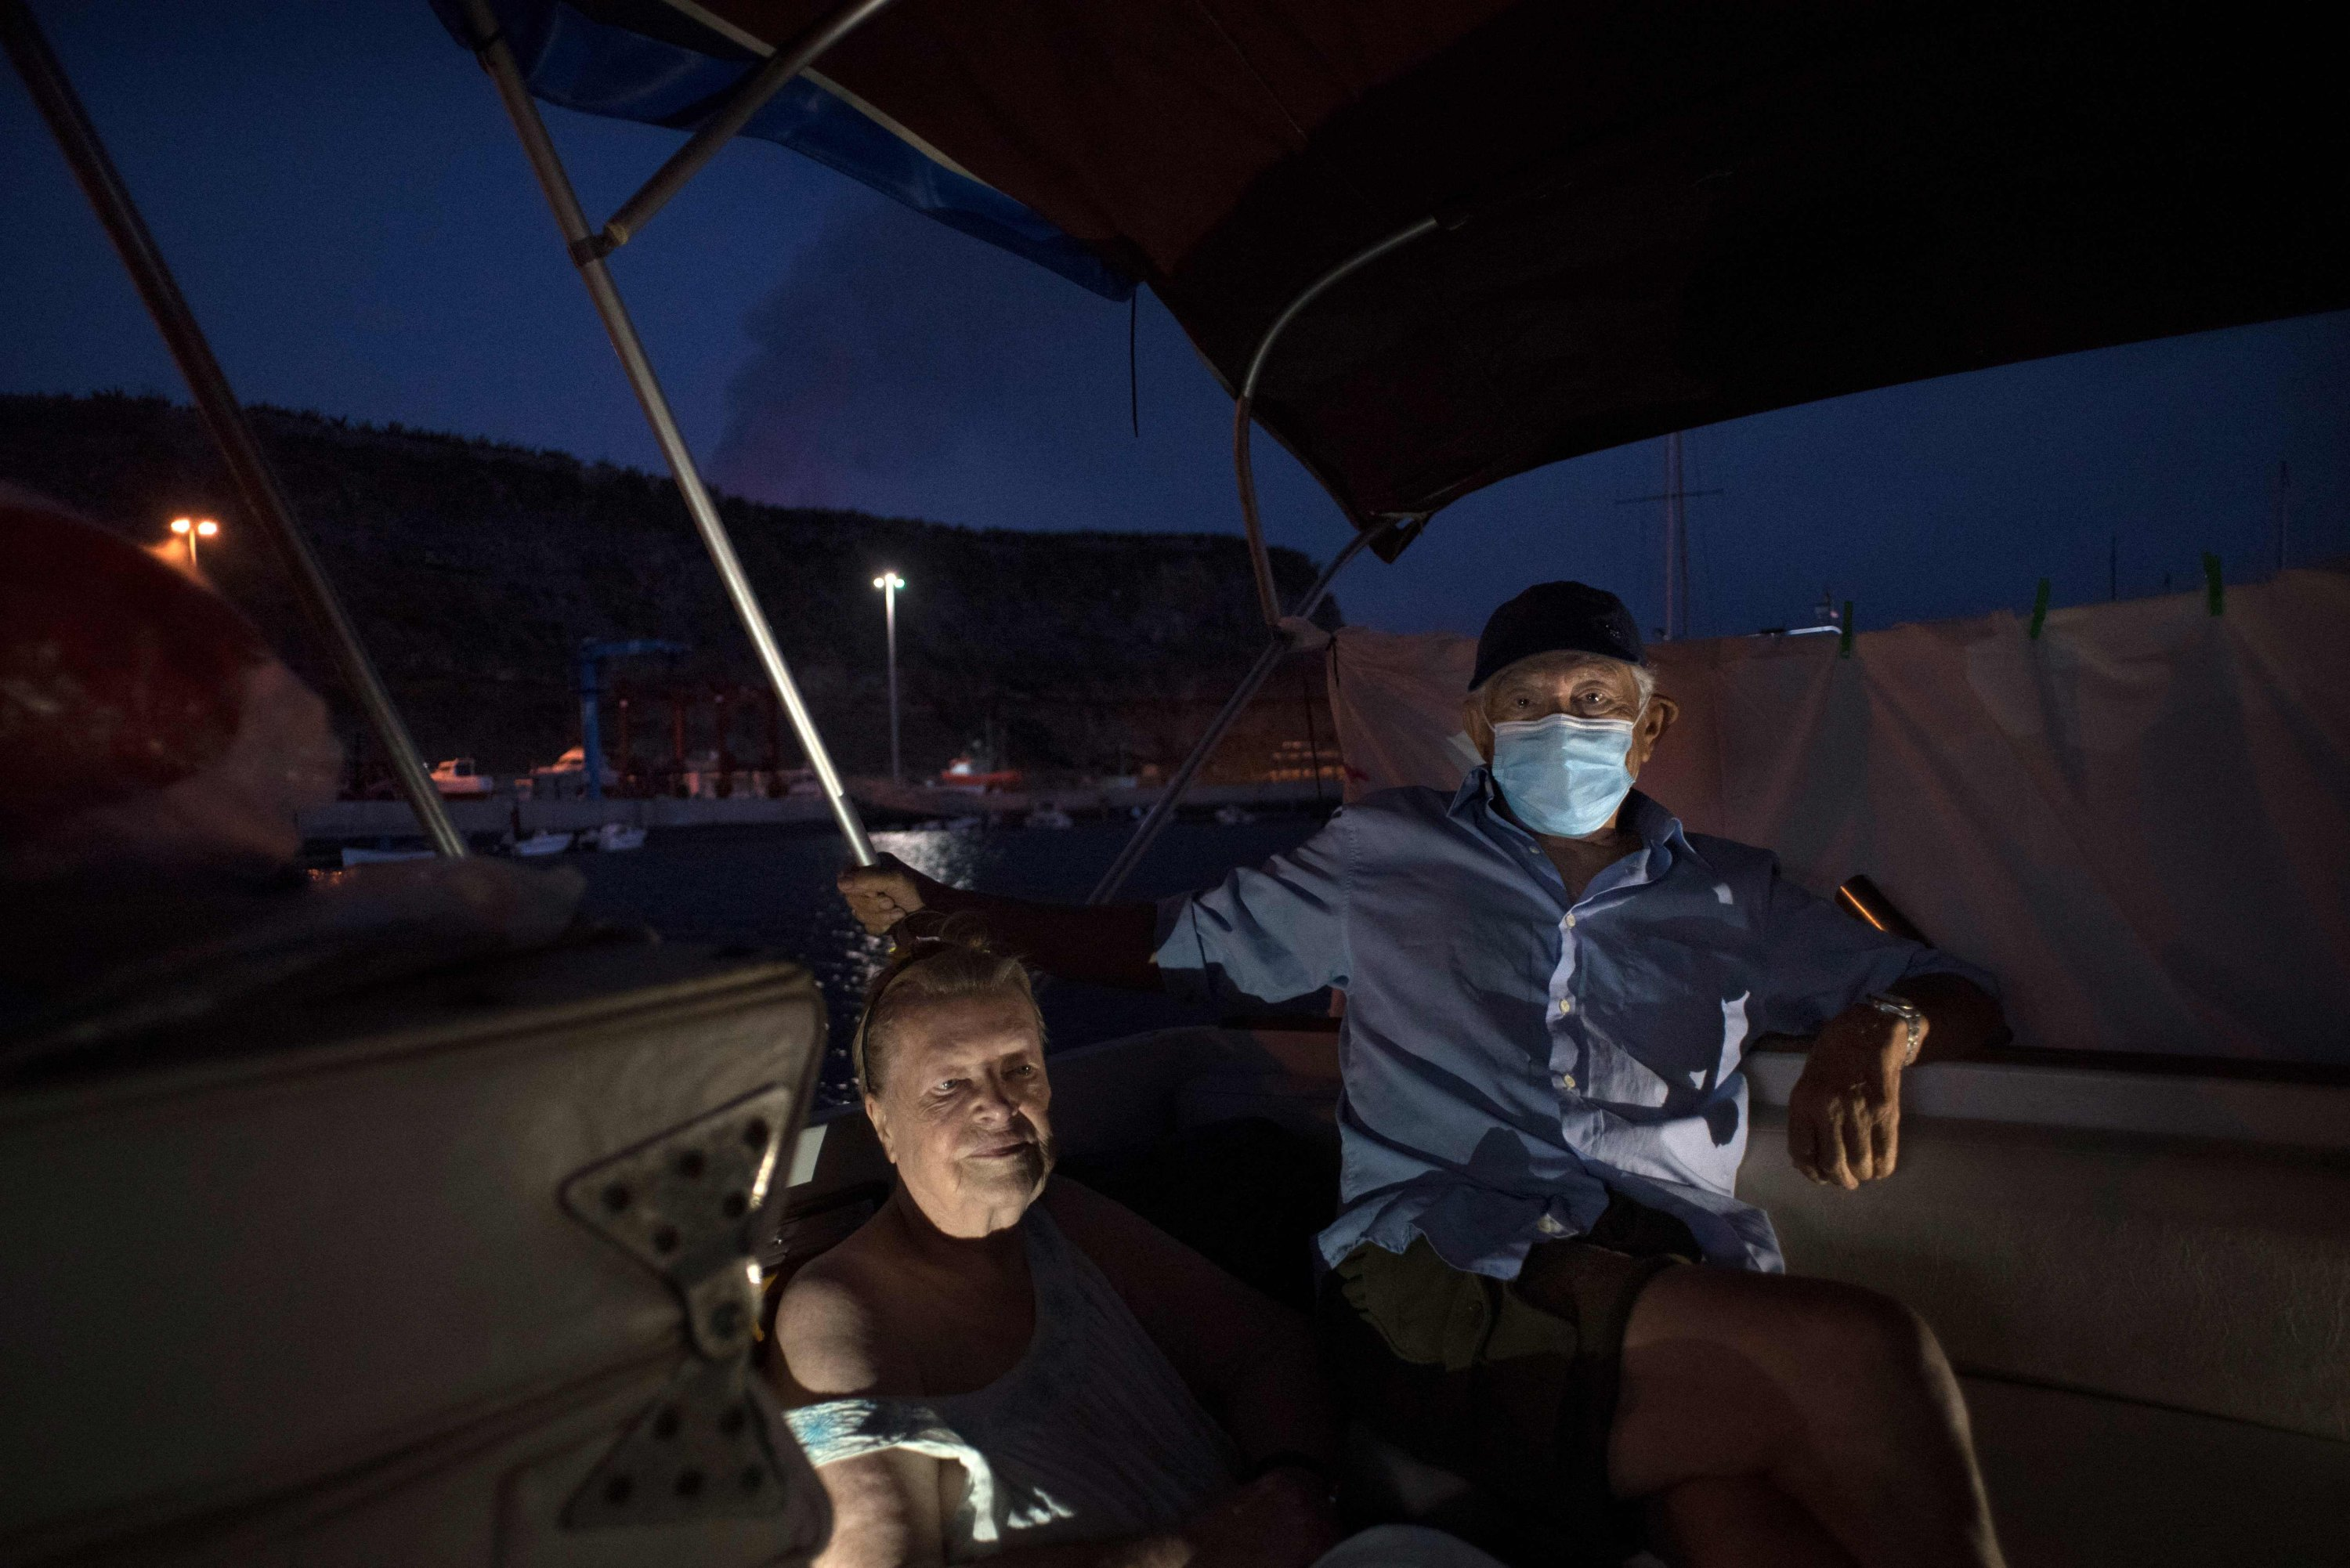 Margaretha and Luis, 80 and 90 years old, wait on their boat where they have settled after fleeing their home after the eruption of the Cumbre Vieja volcano, in the port of Tazacorte, on La Palma, Spain, Oct. 3, 2021. (AFP Photo)